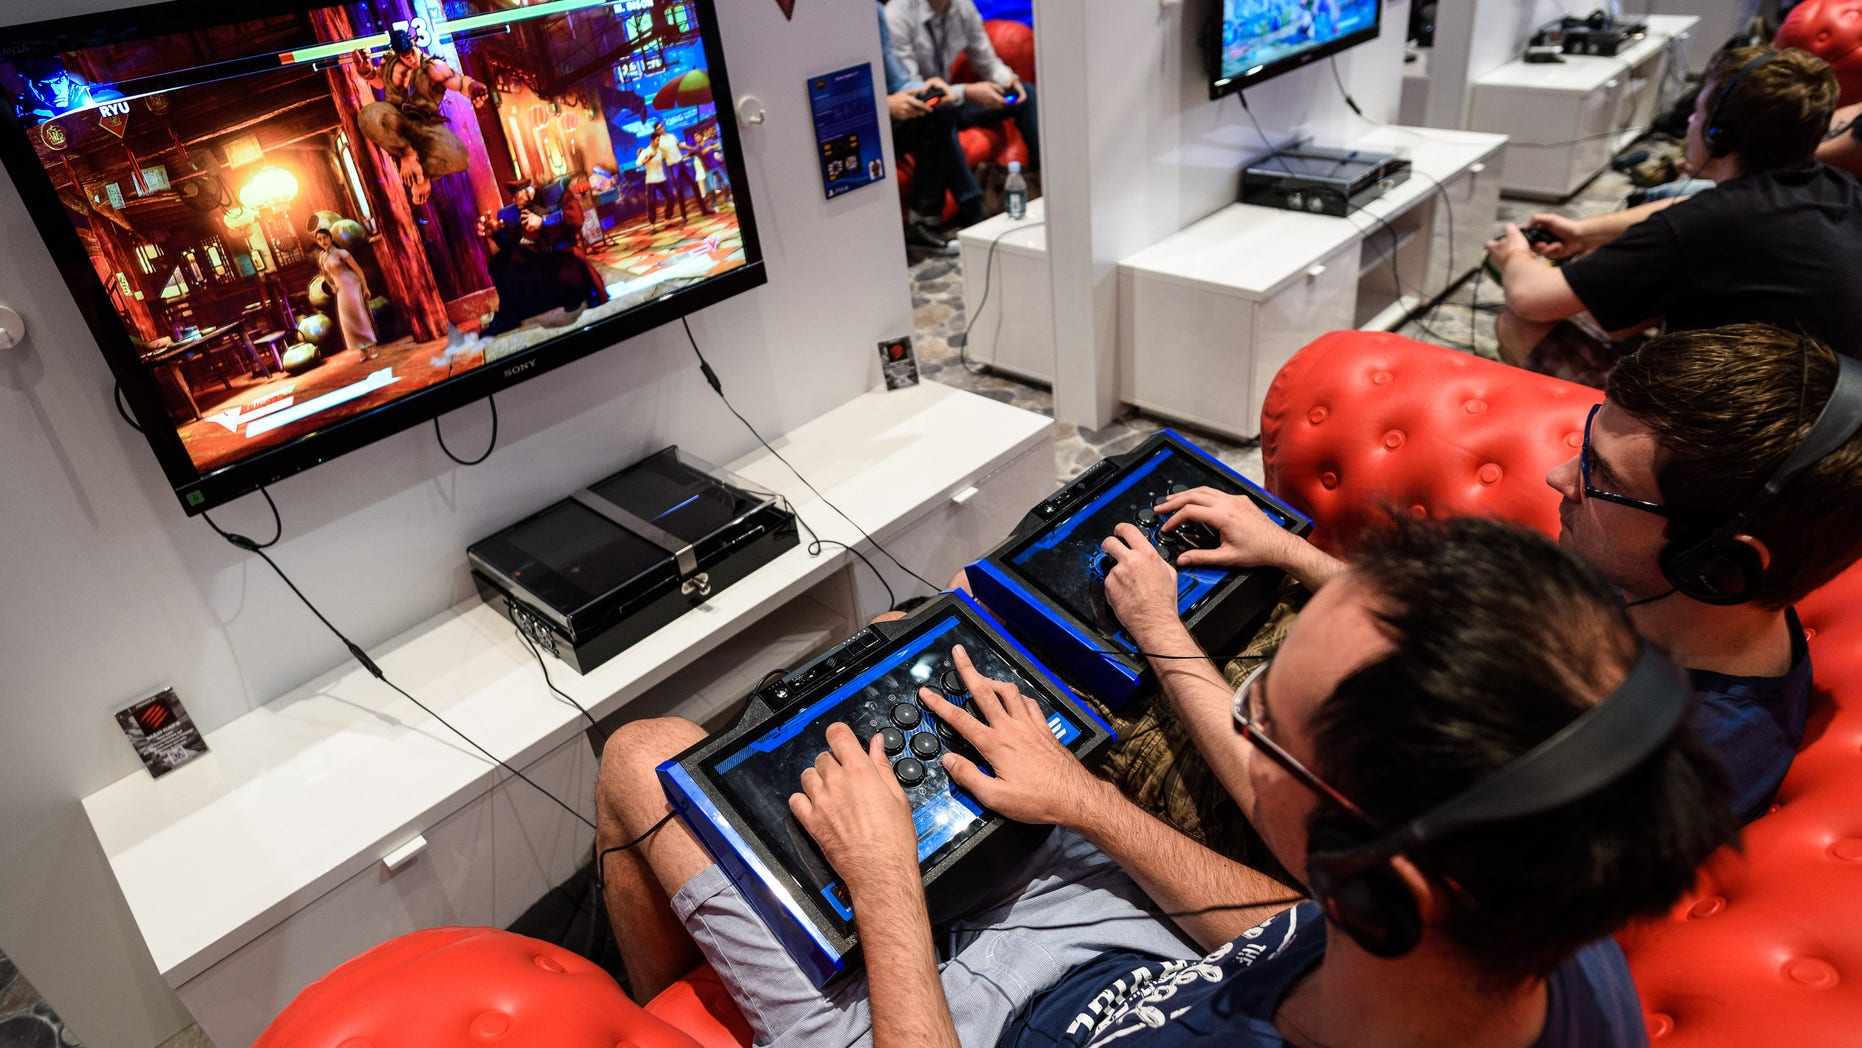 COLOGNE, GERMANY - AUGUST 05:  People play video games at the Sony Playstation stand at the Gamescom 2015 gaming trade fair during the media day on August 5, 2015 in Cologne, Germany. Gamescom is the world's largest digital gaming trade fair and will be open to the public from August 6-9.  (Photo by Sascha Schuermann/Getty Images)